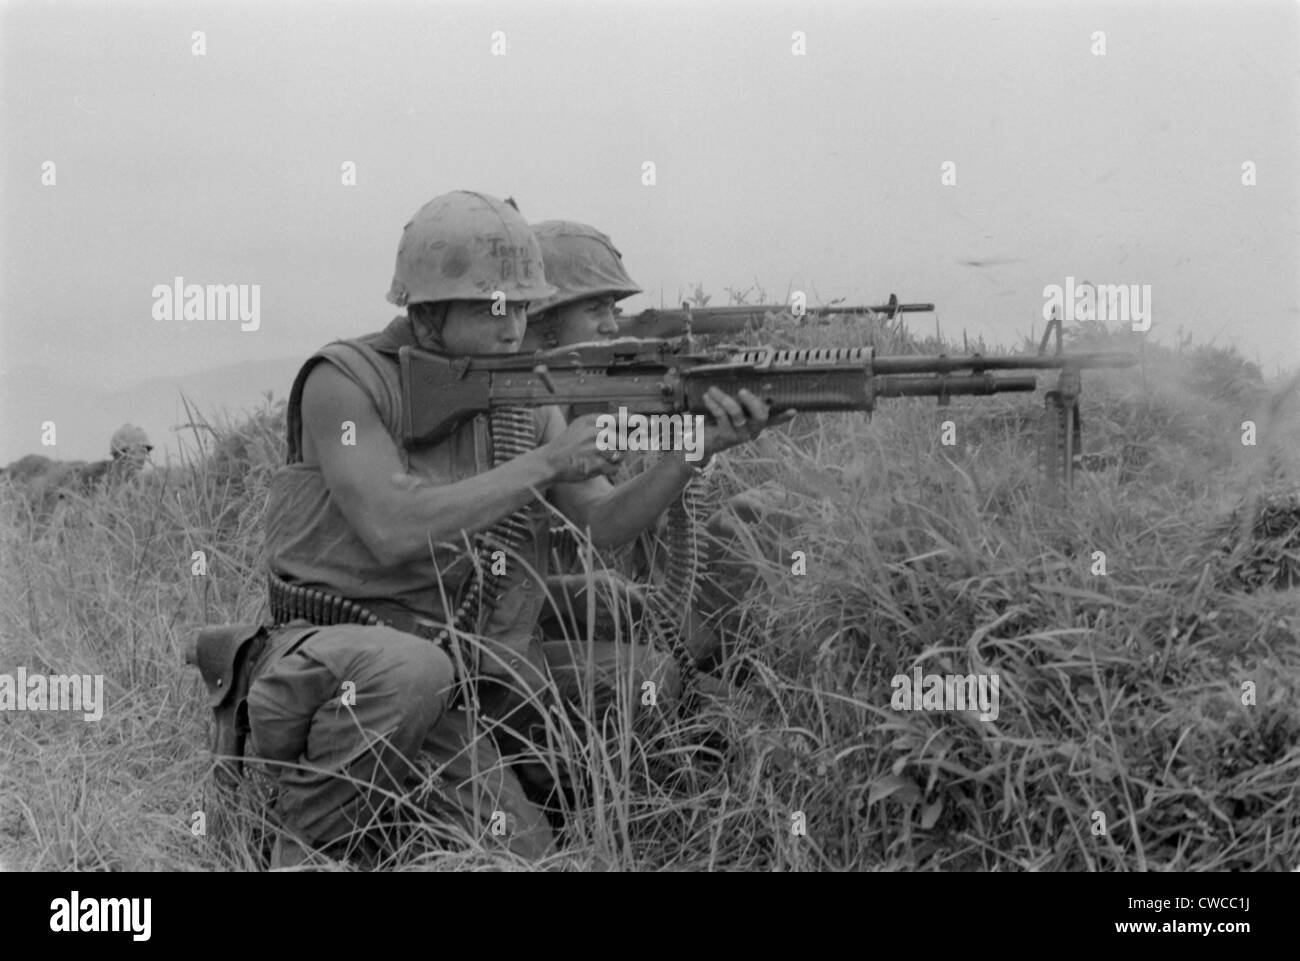 Vietnam war us marine machine gunner and rifleman fire at the vietnam war us marine machine gunner and rifleman fire at the enemy near the demilitarized zone in vietnam may 13 1967 sciox Image collections